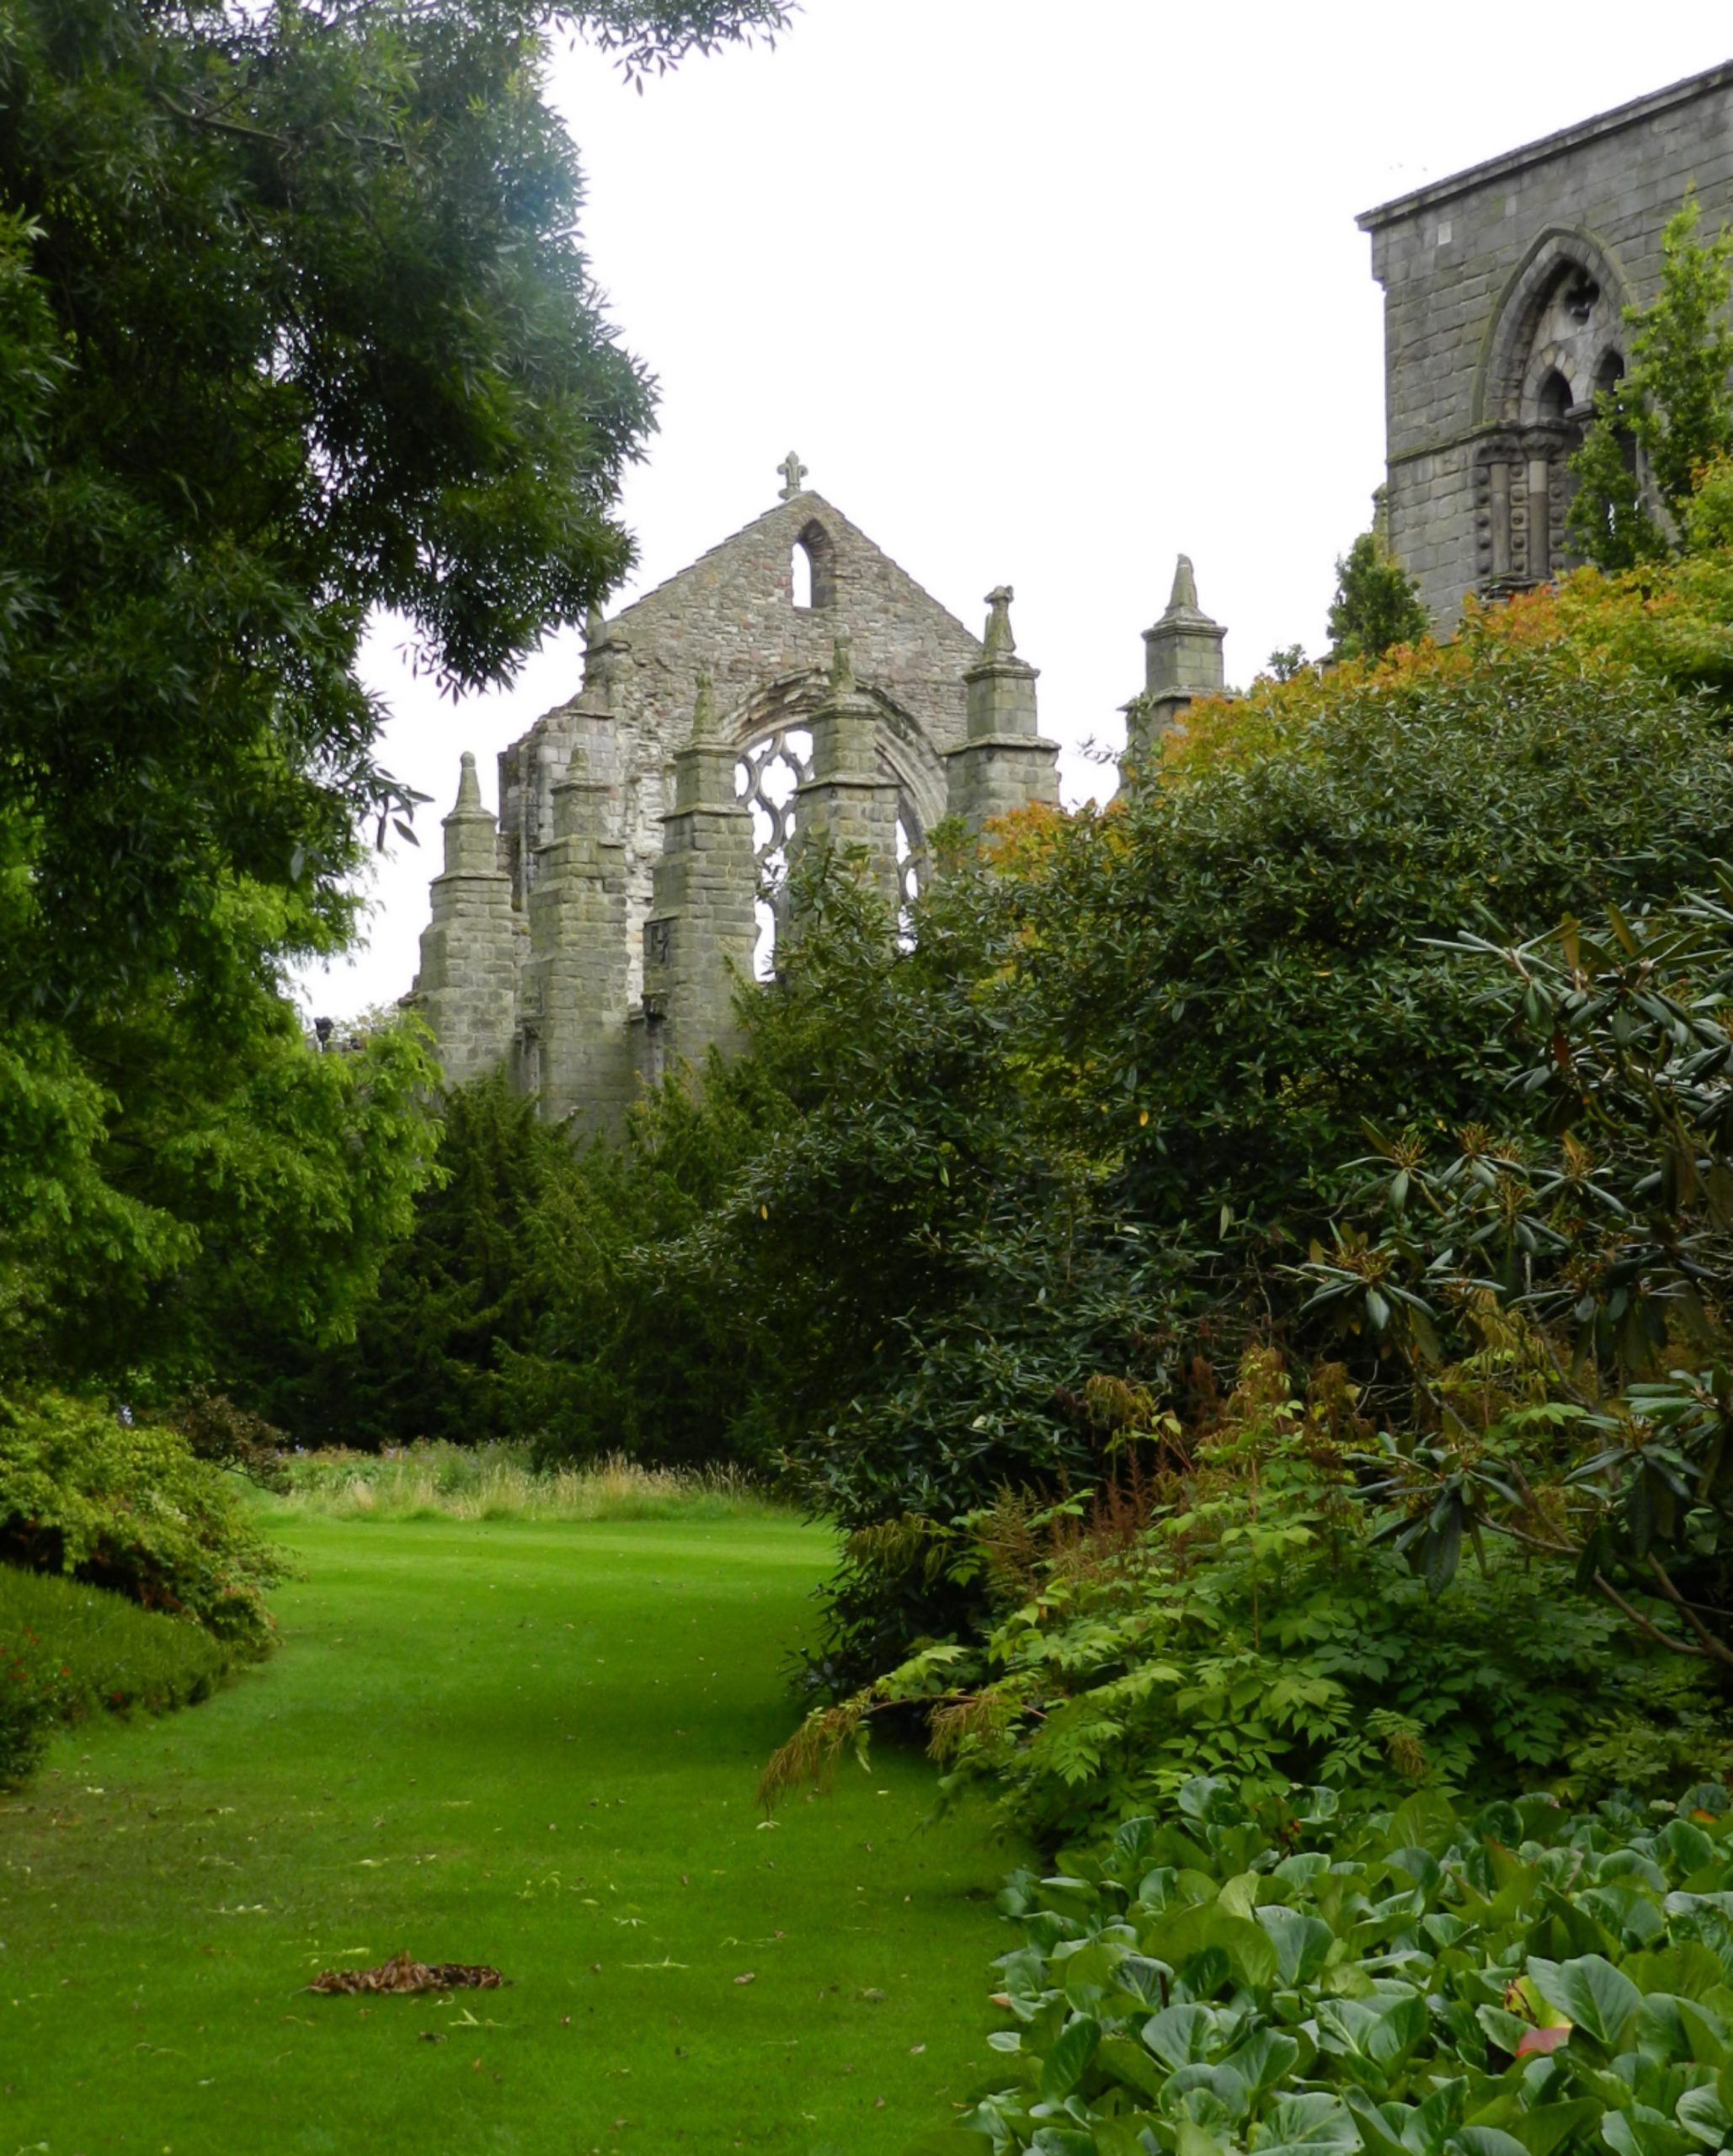 Holyrood Palace & Park: Fit for a King